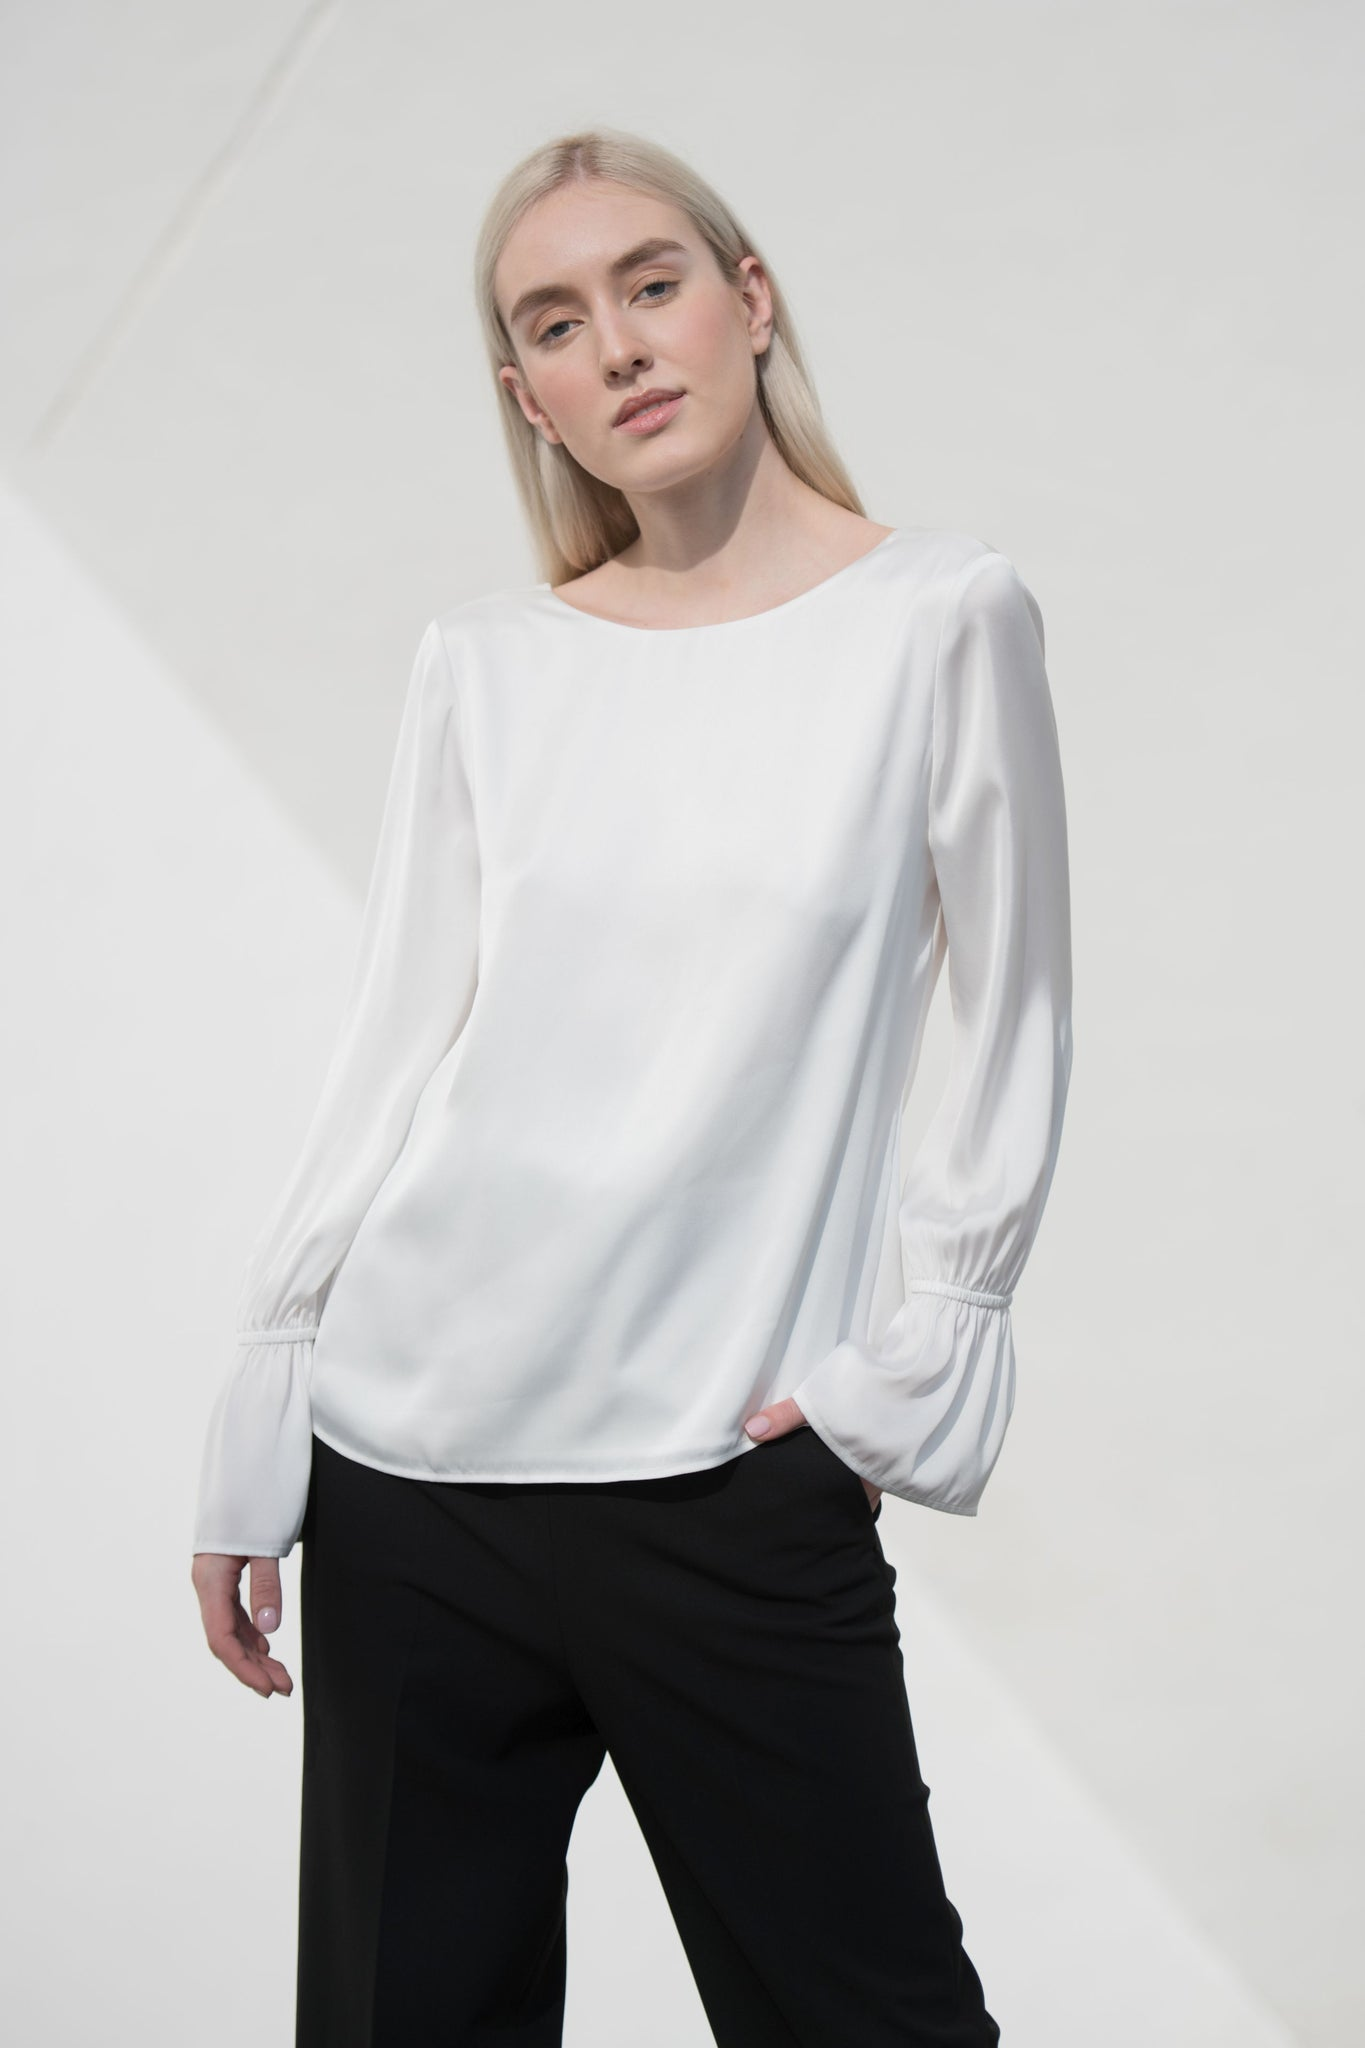 Madison women's Soft white Blouse - Less than none Greater than